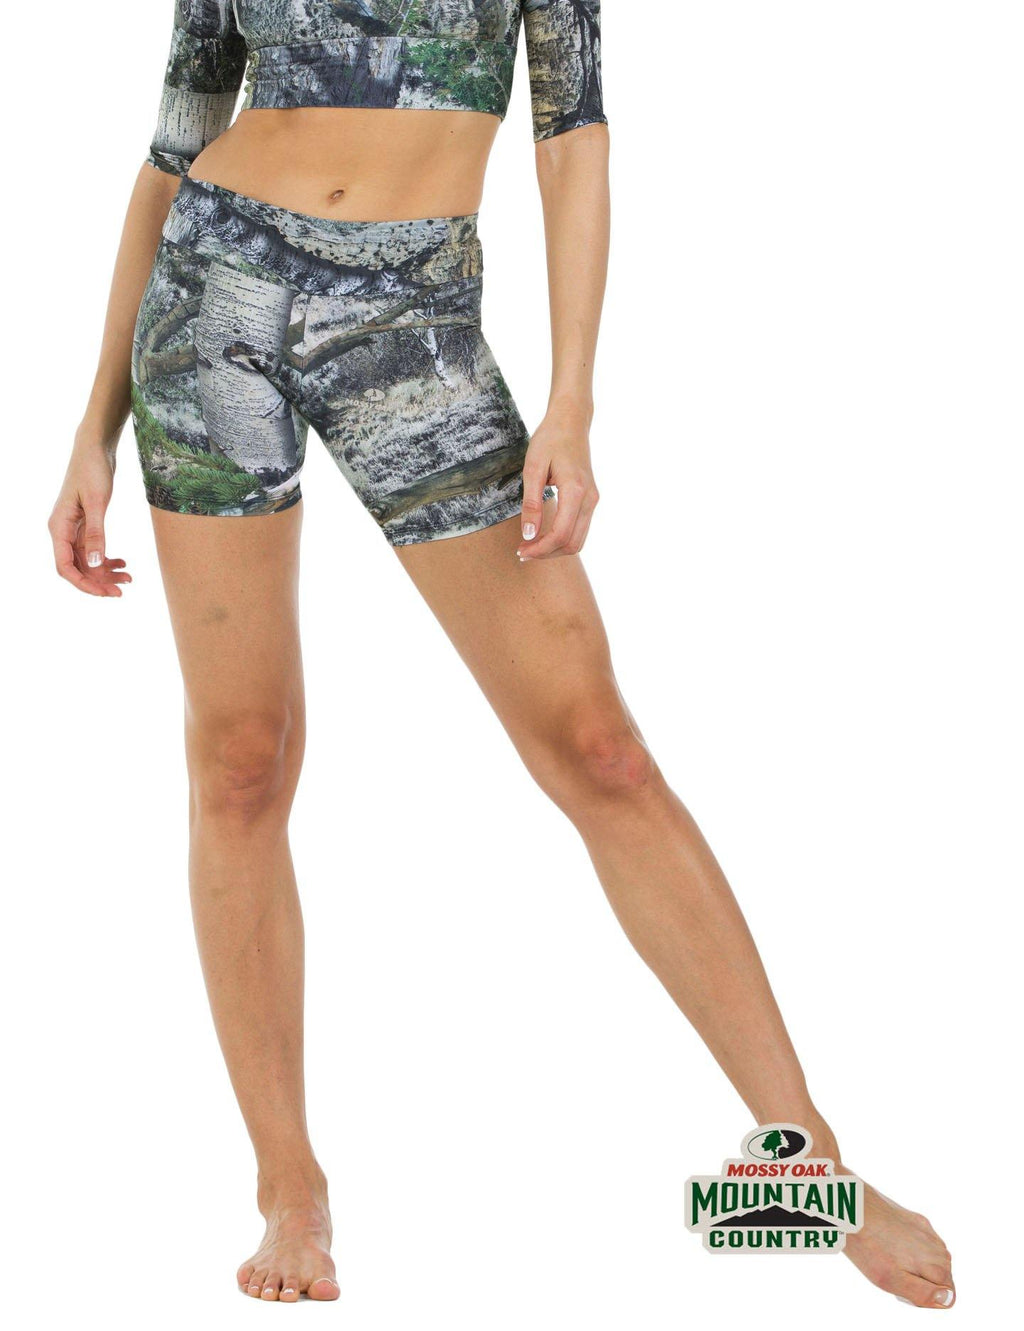 Apsara Shorts Low Waist, Mossy Oak Mountain Country - Apsara Style